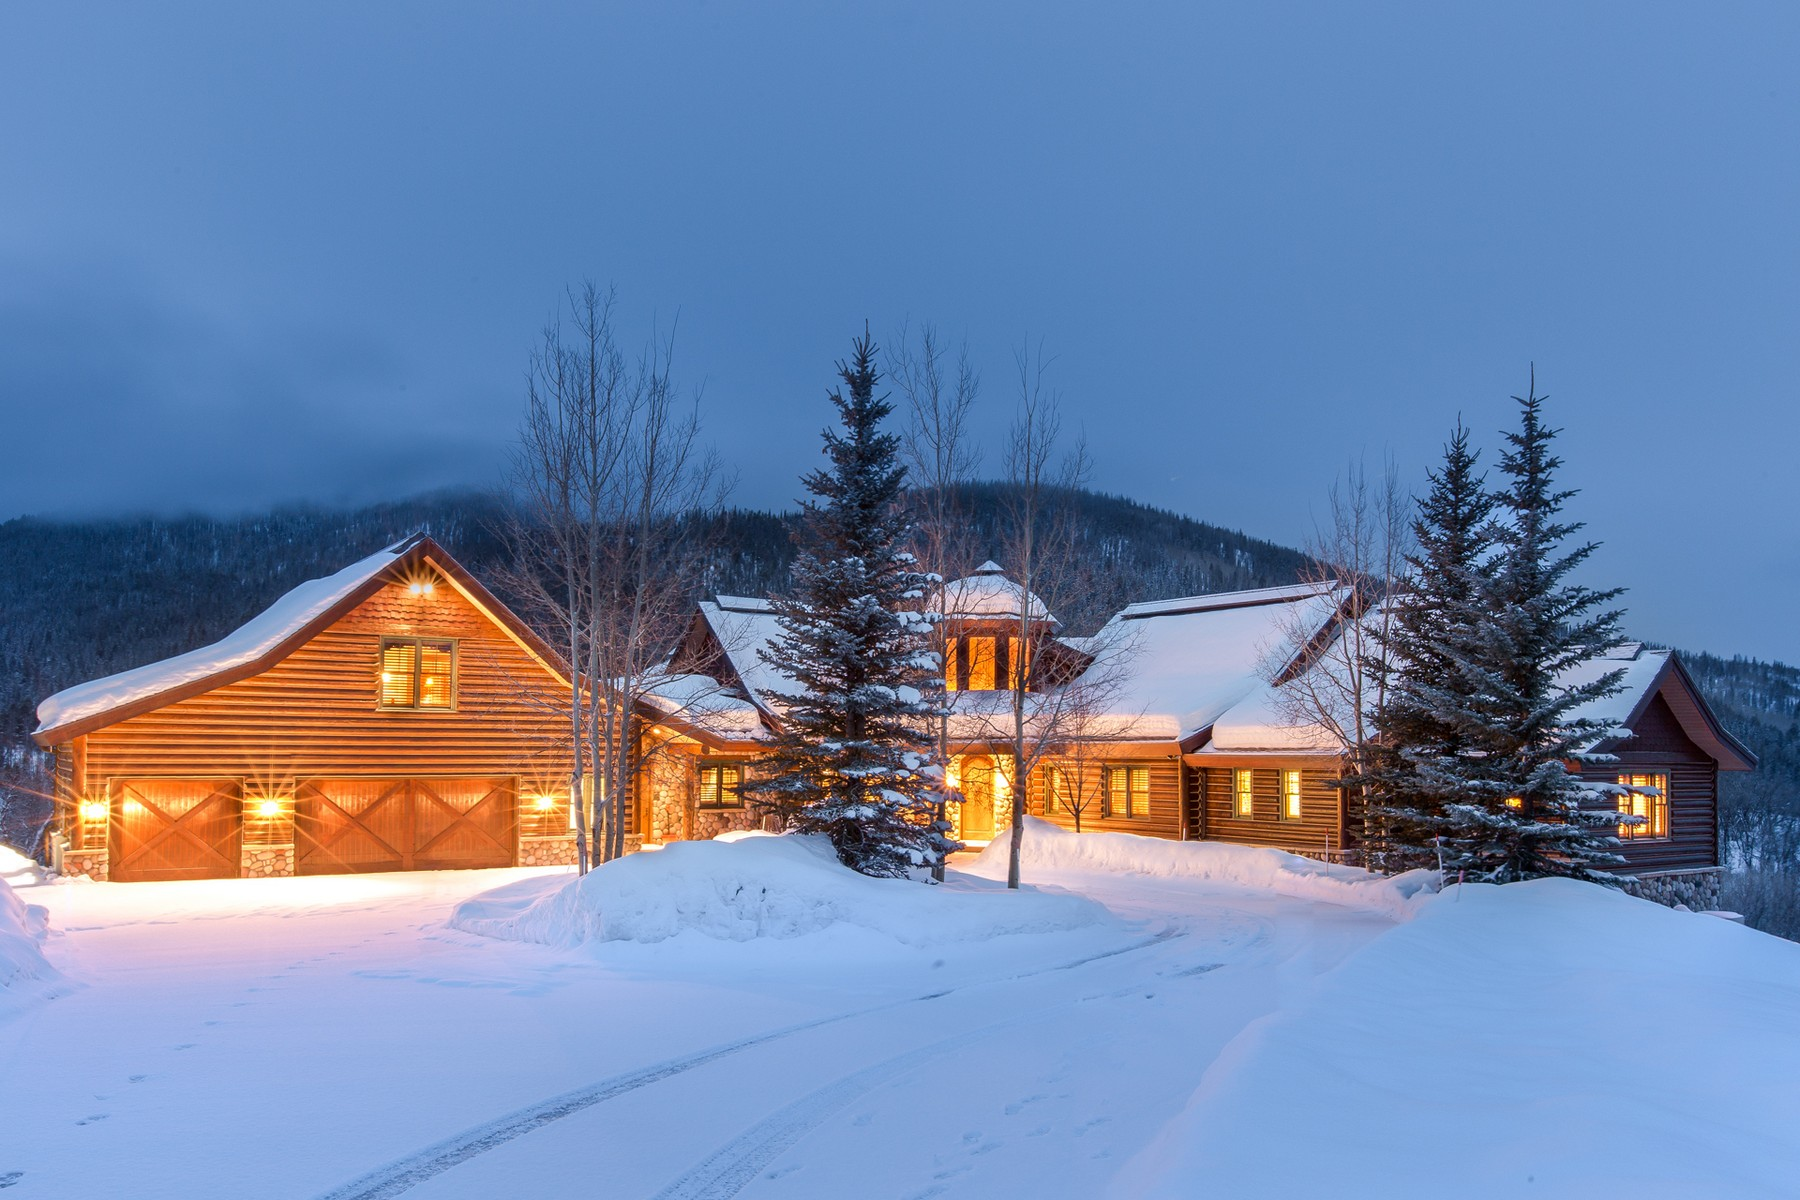 Single Family Home for Sale at Catamount Ranch 34200 Catamount Dr. Steamboat Springs, Colorado, 80487 United States